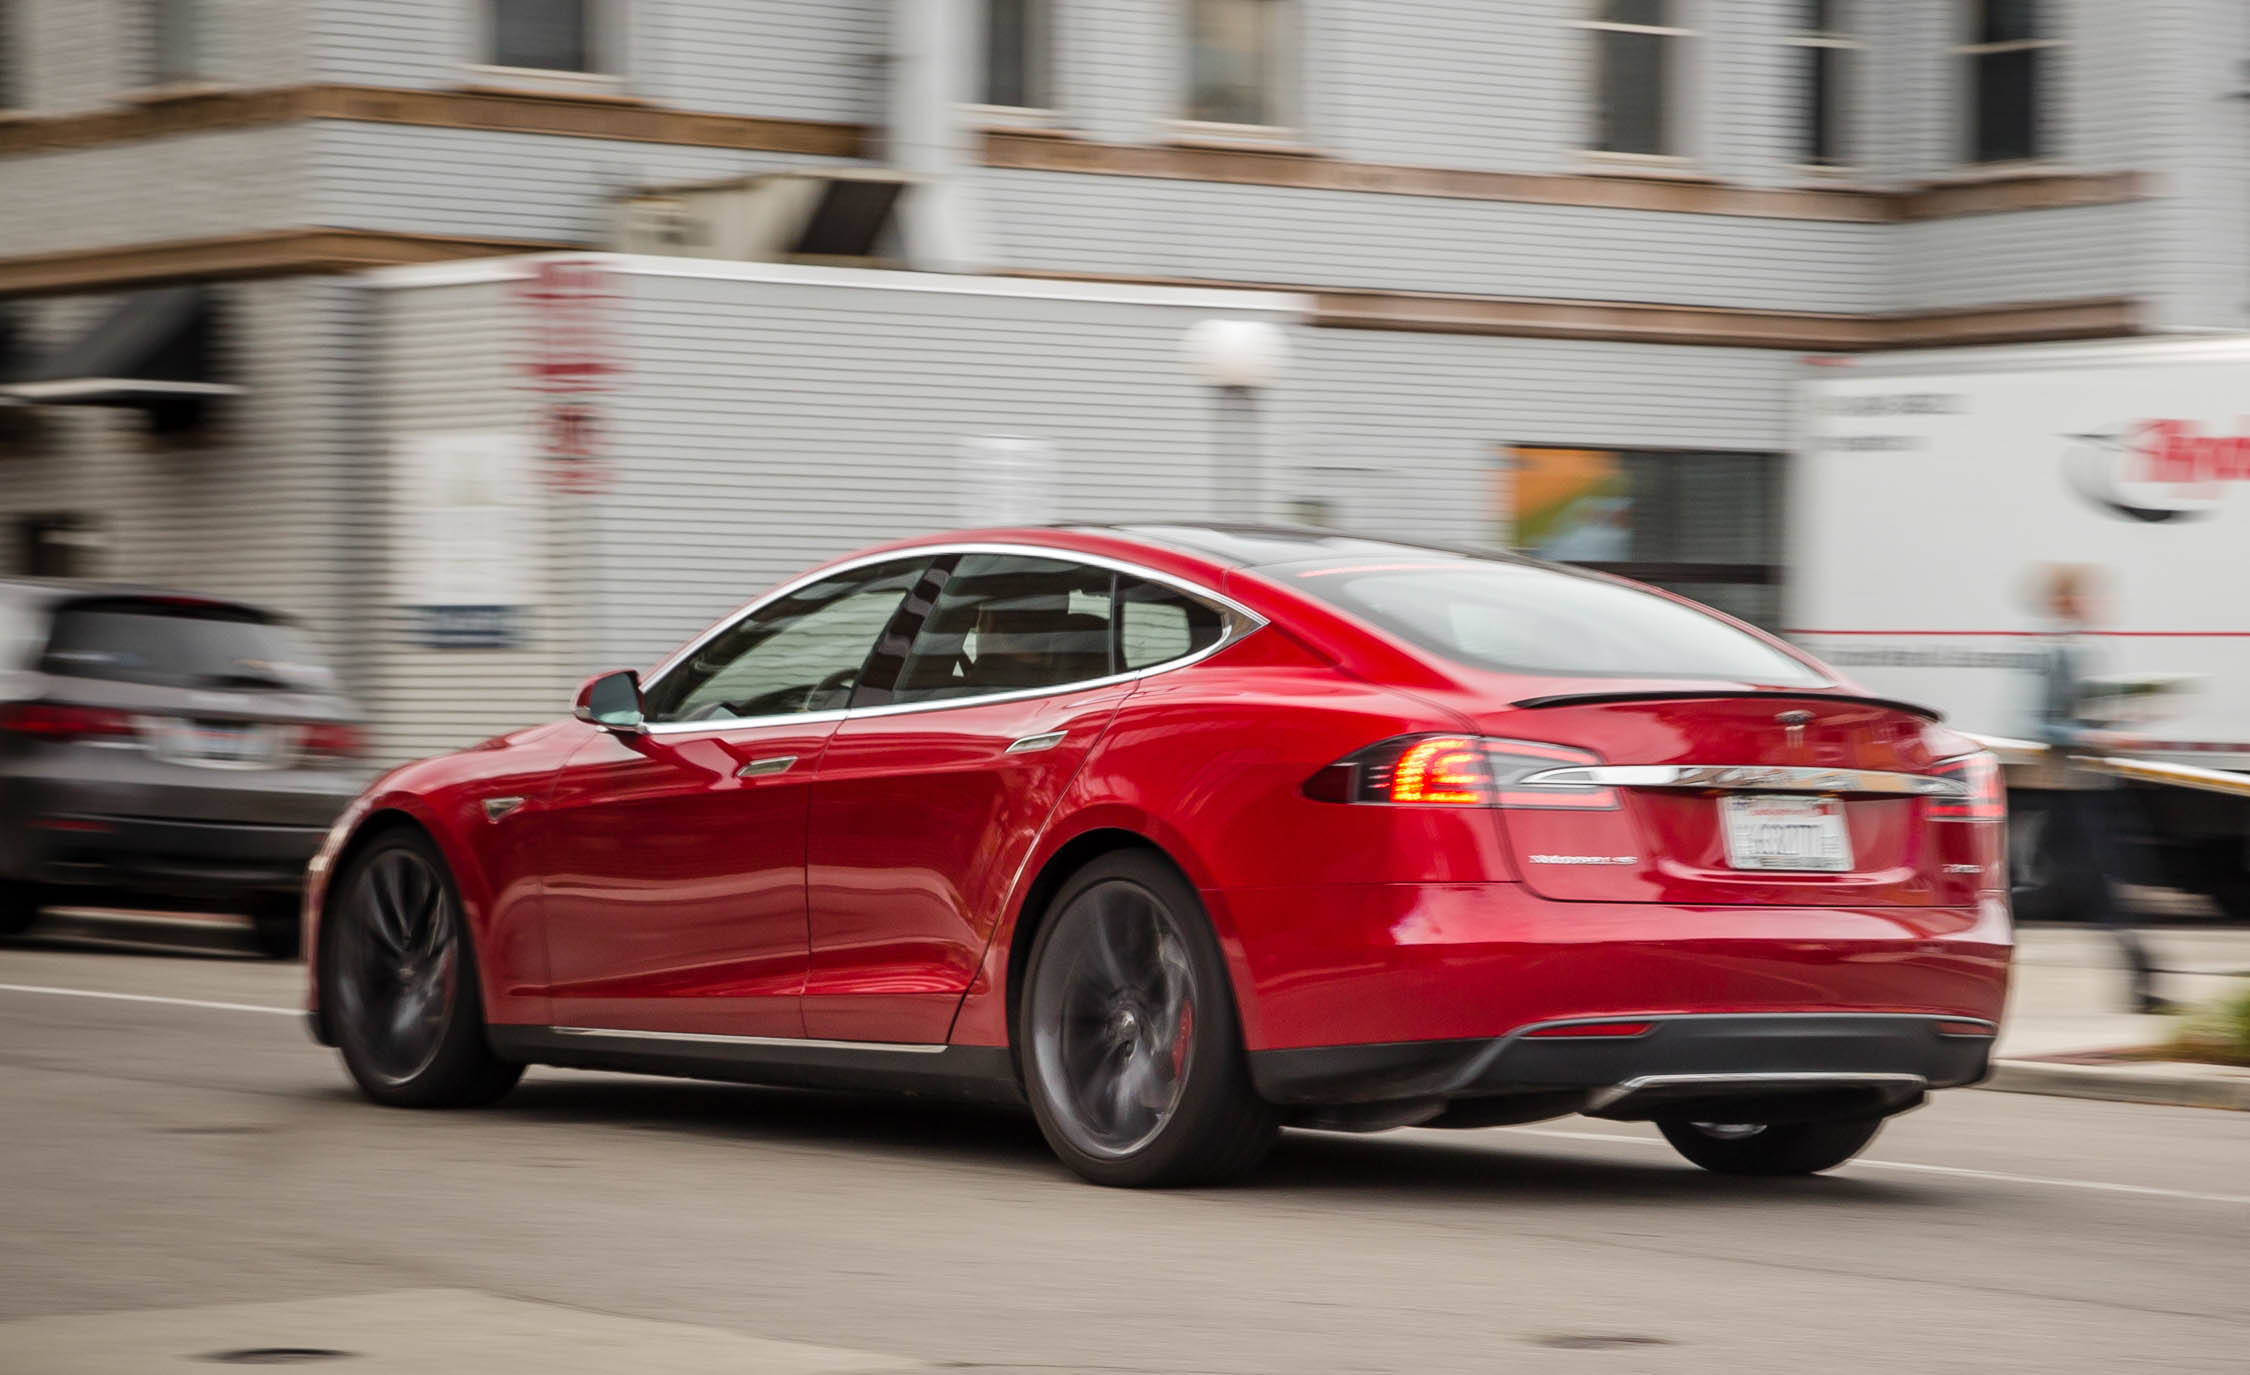 2015 Tesla Model S P85D (View 2 of 37)